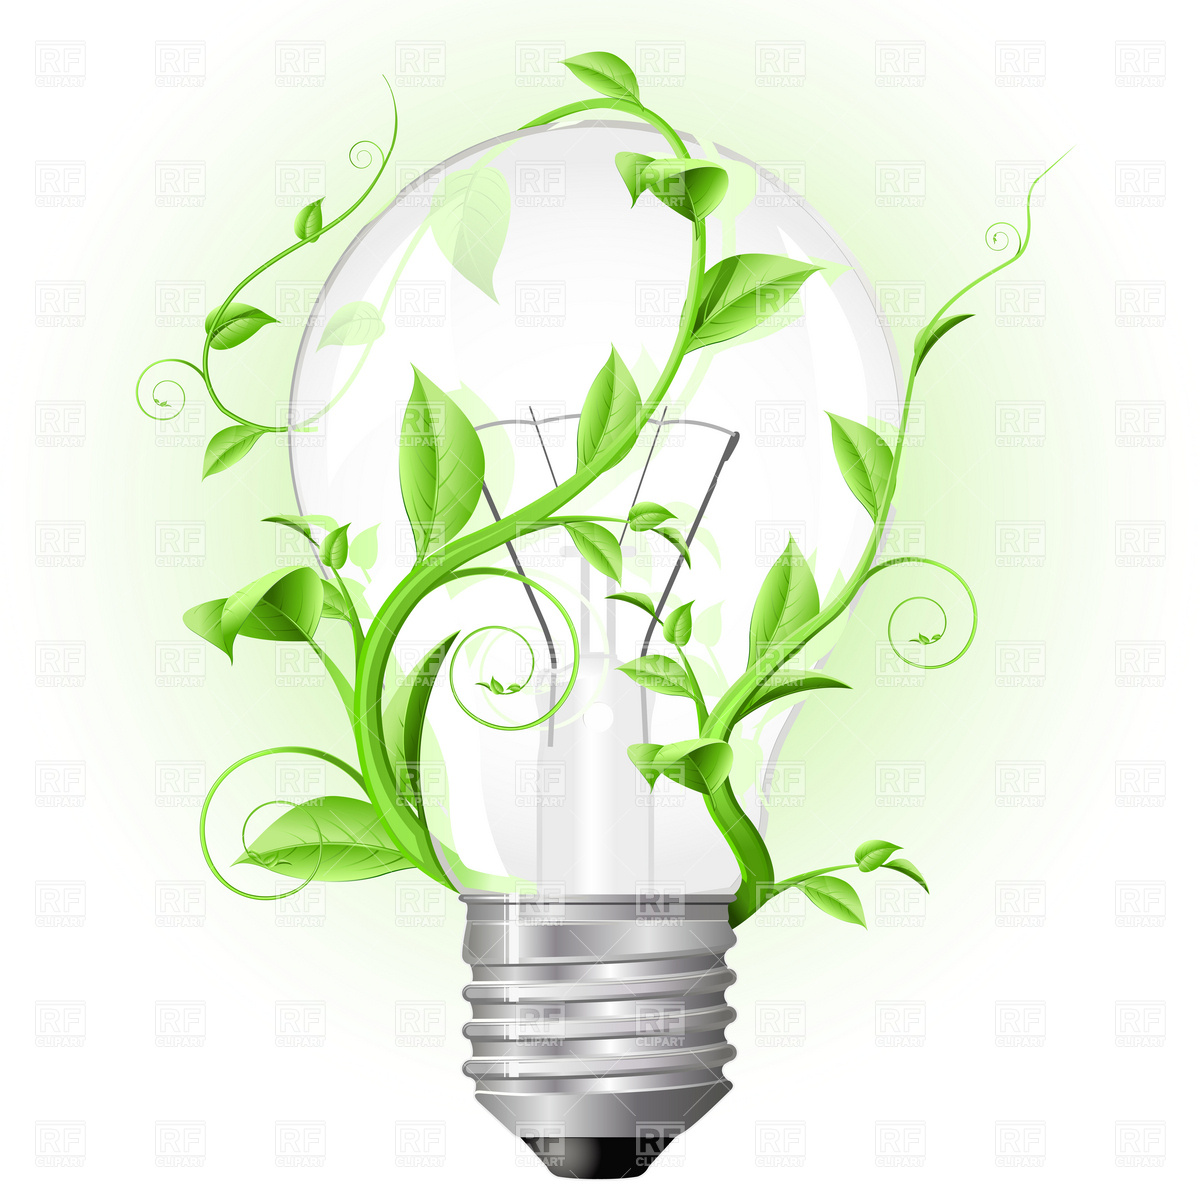 Light bulb twisted with plant Vector Image #4832.